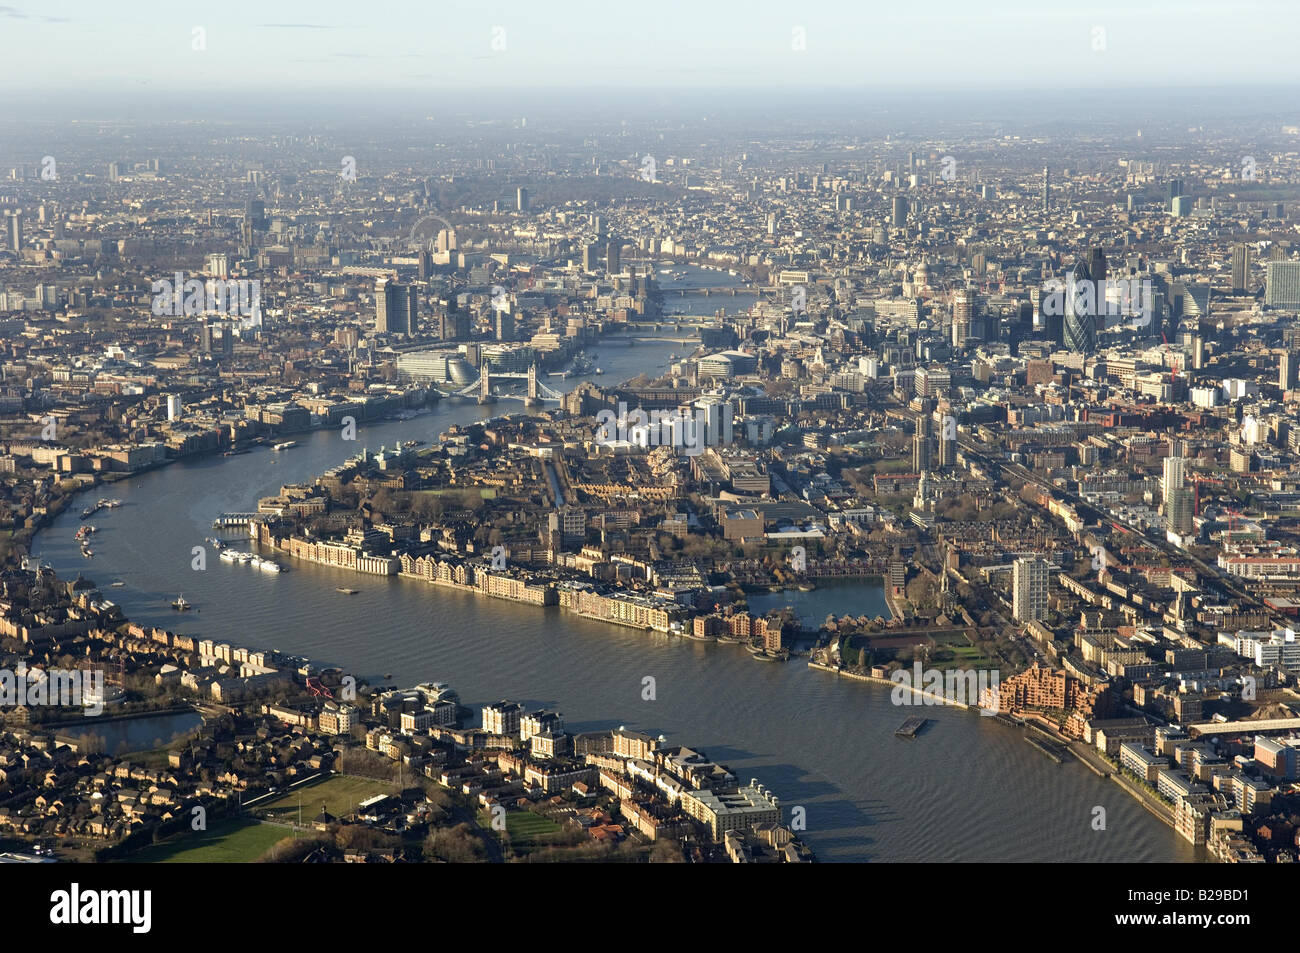 Wapping and Thames Date 12 03 2008 Ref ZB648 111149 0059 COMPULSORY CREDIT World Pictures Photoshot - Stock Image